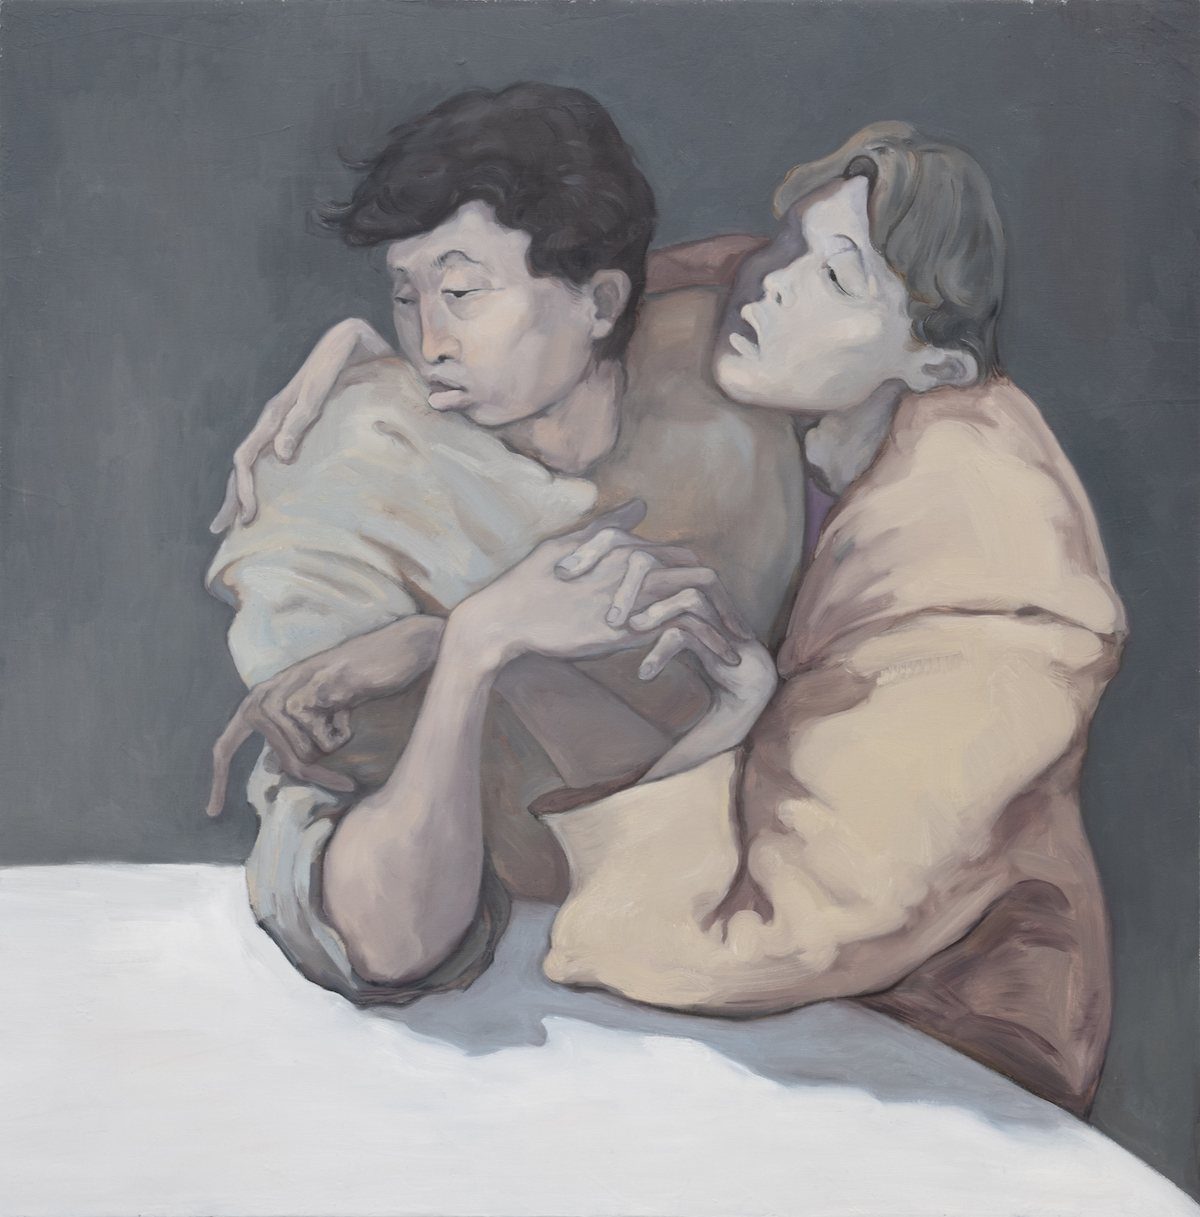 Keep Warm, 2020, Oil on canvas, 100 x 100cm |《取暖》,2020年,布面油画,100 x 100厘米